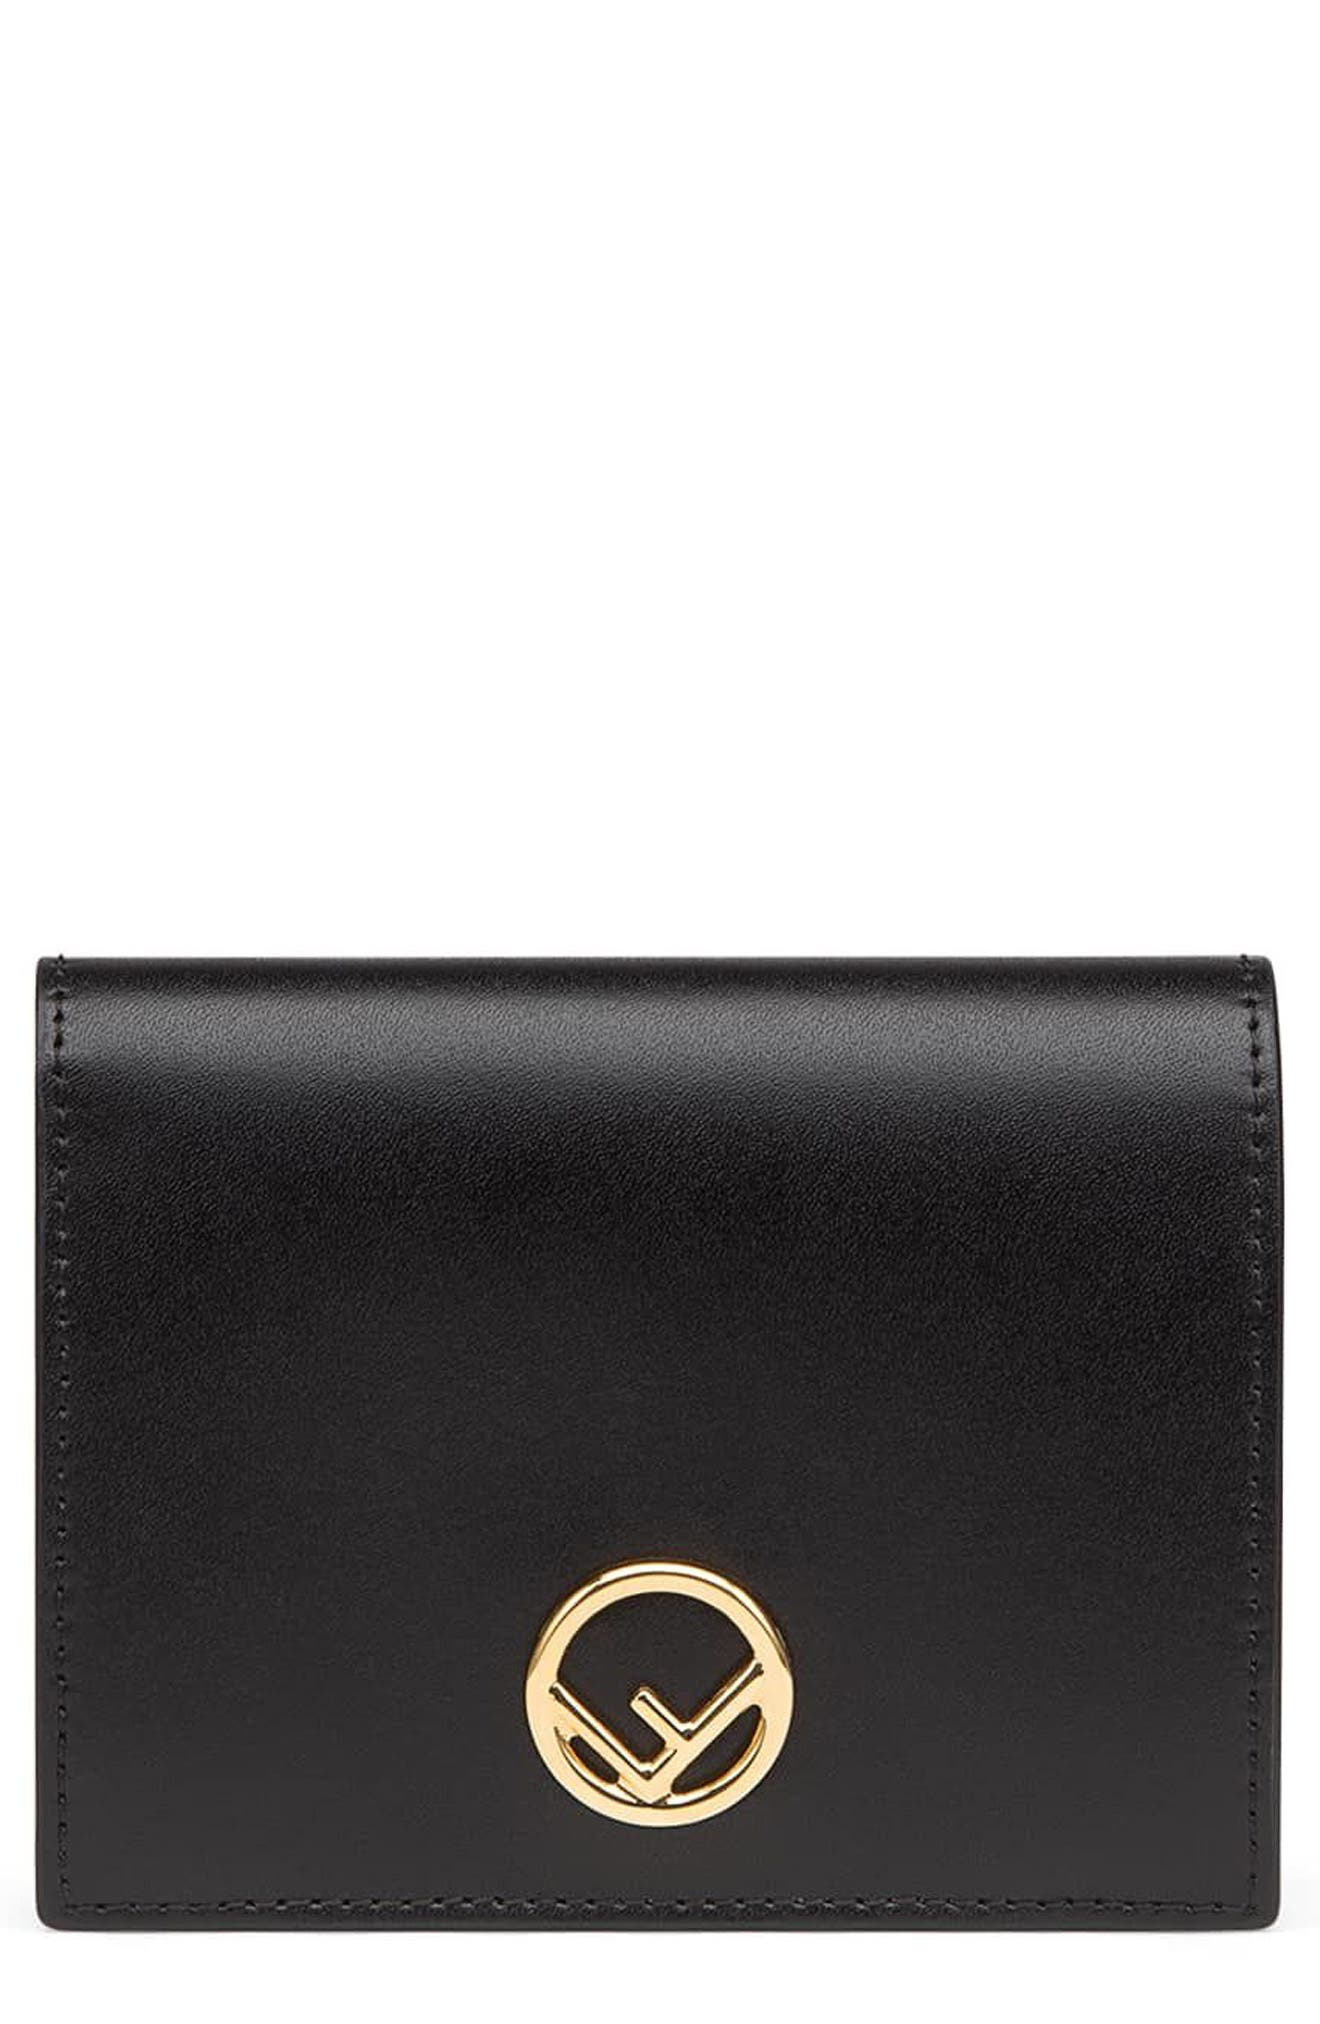 Logo Small Leather French Wallet,                         Main,                         color, Nero/ Oro Soft